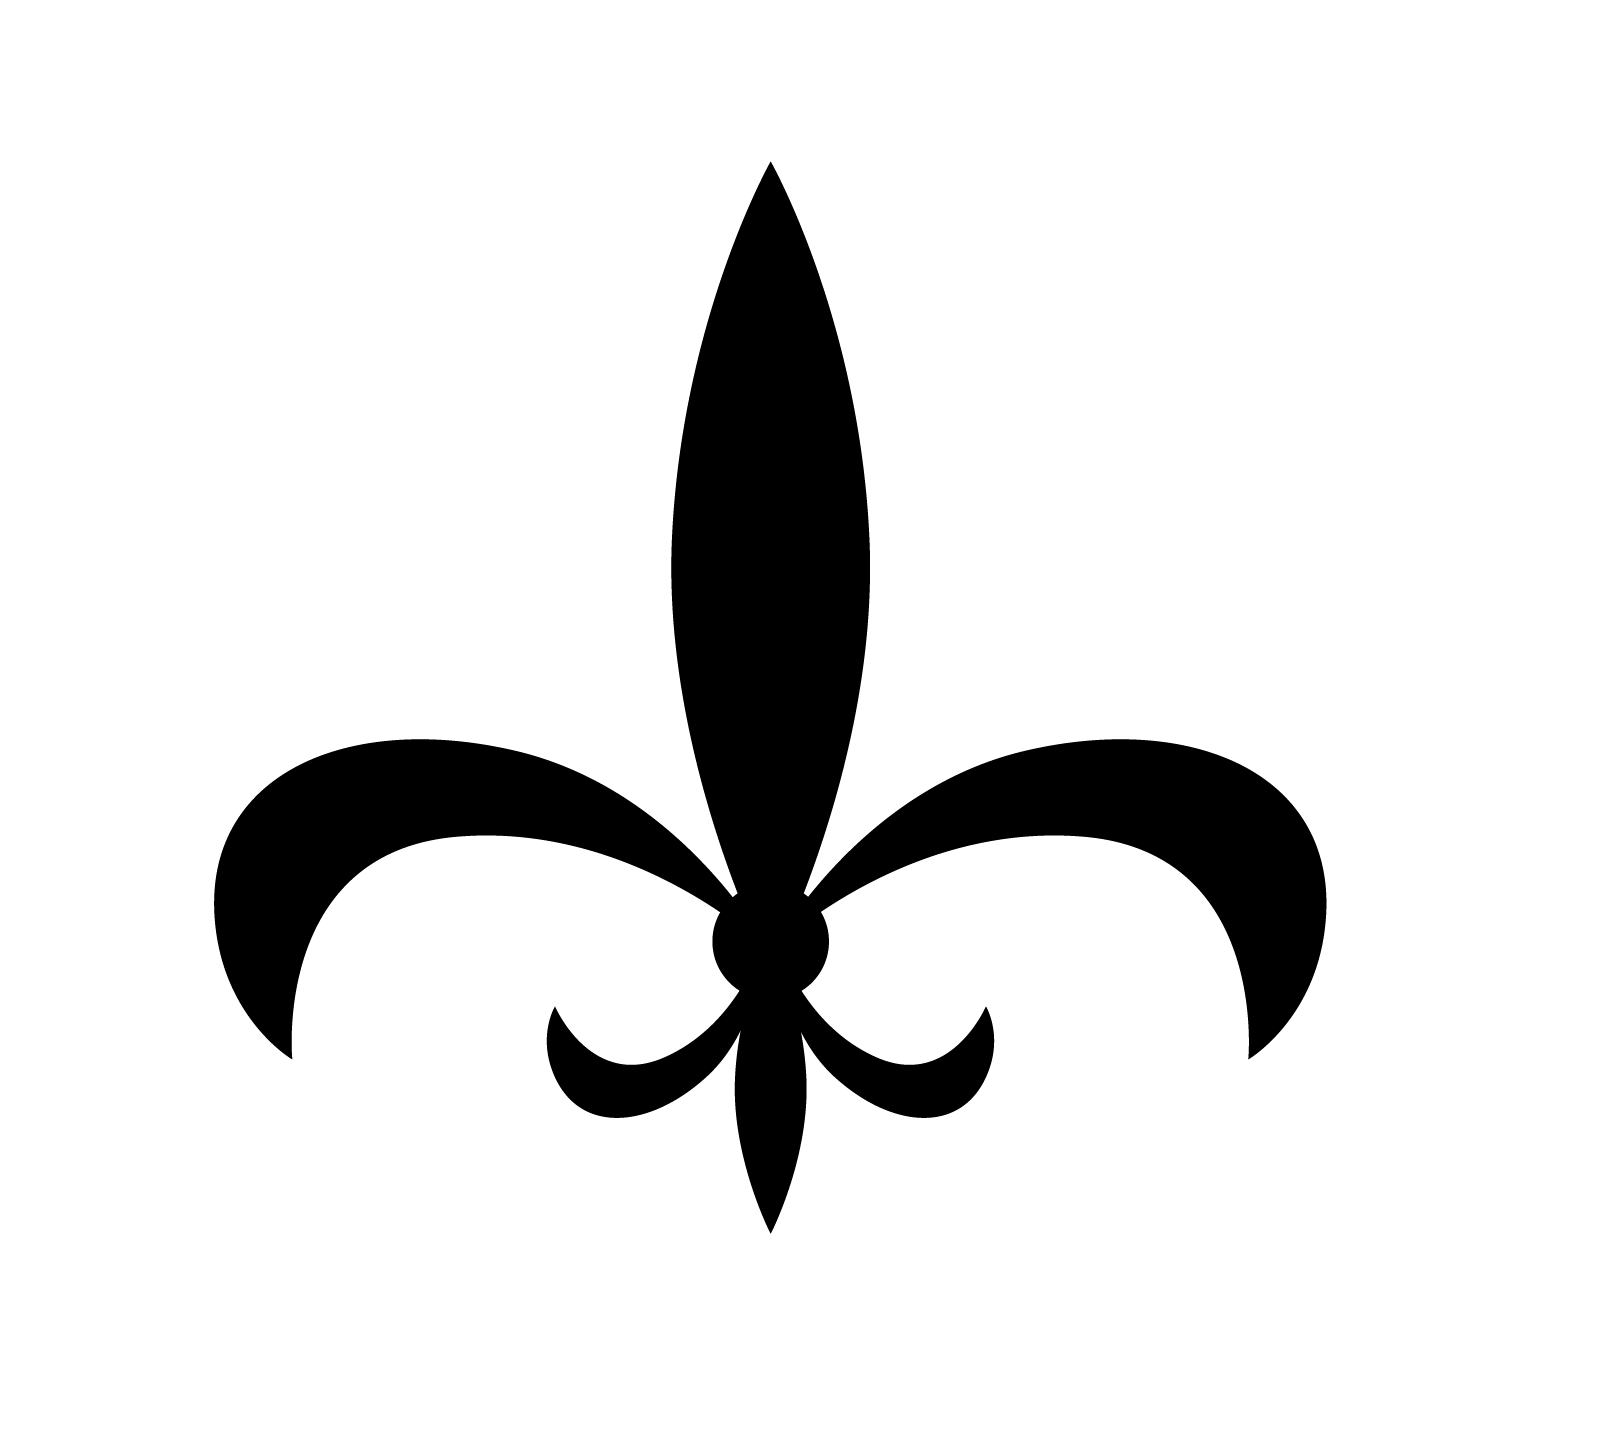 hight resolution of fleur de lis black and white vector clip art